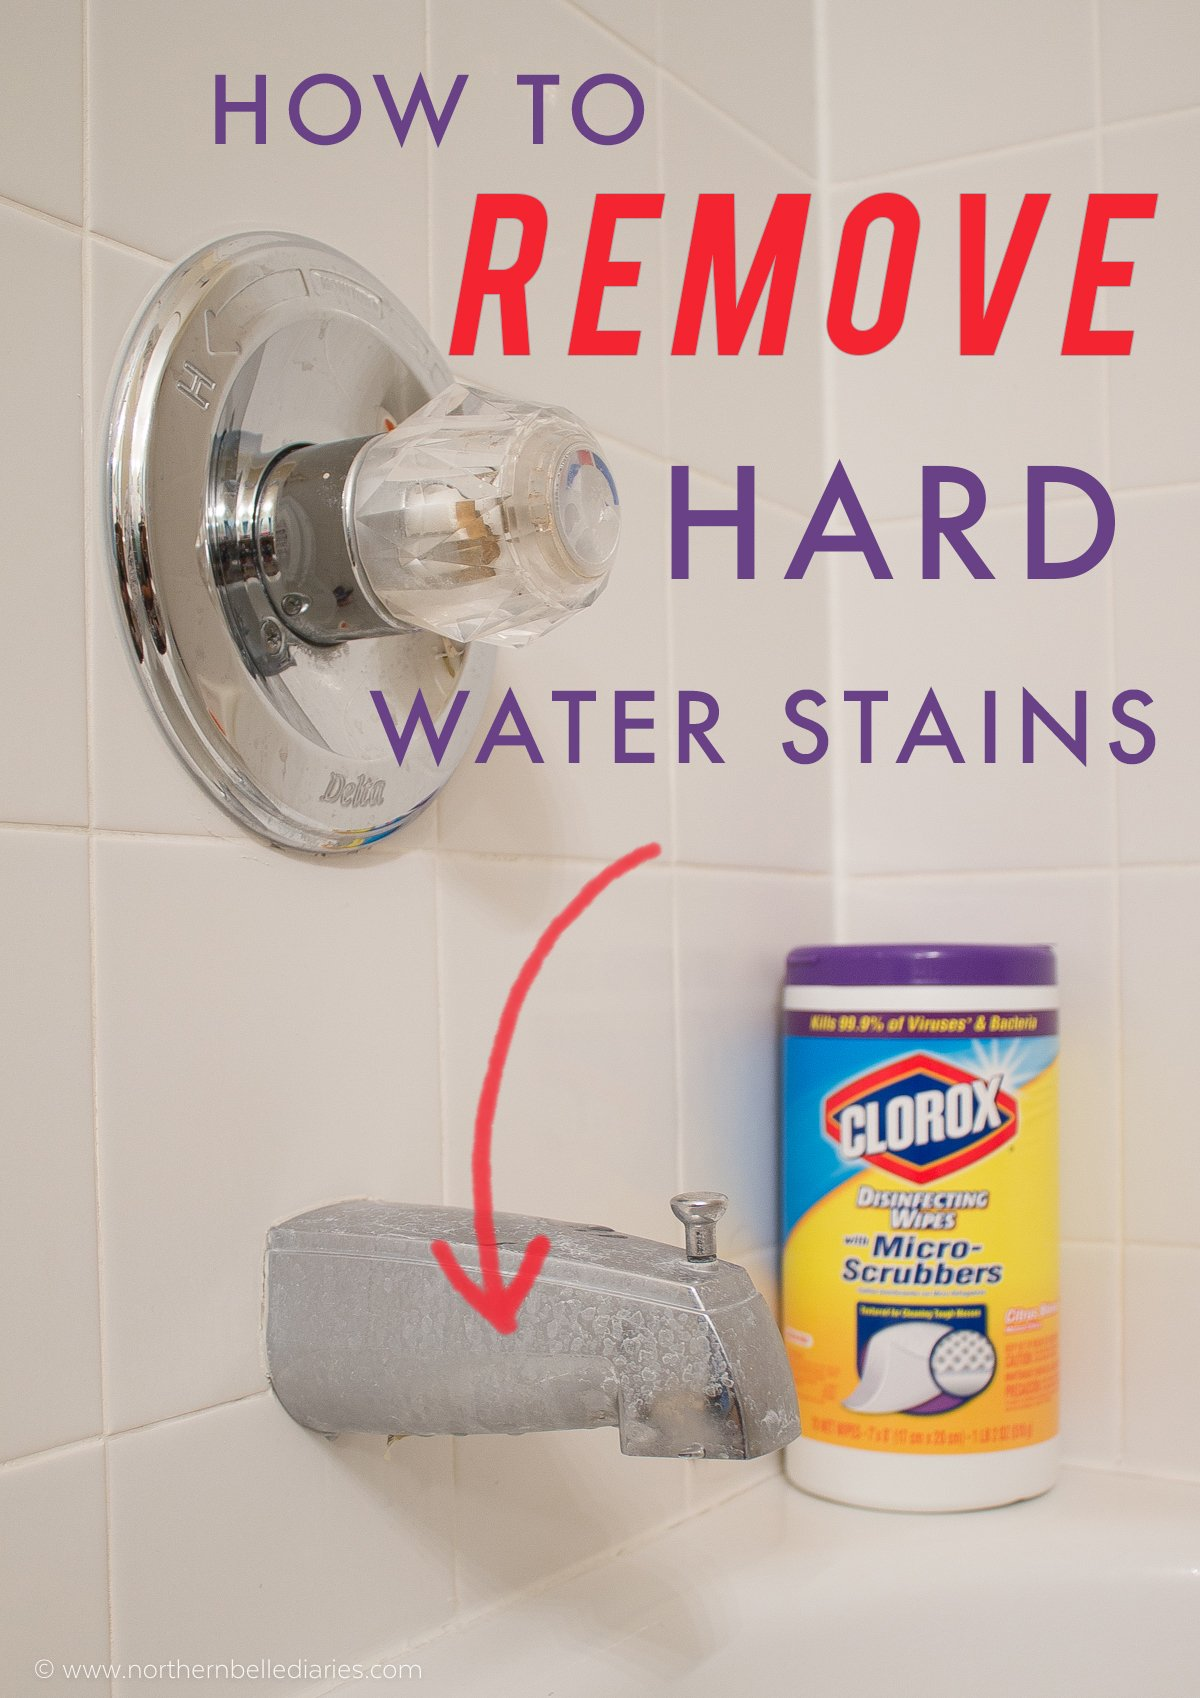 How to Remove Hard Water Stains on Chrome